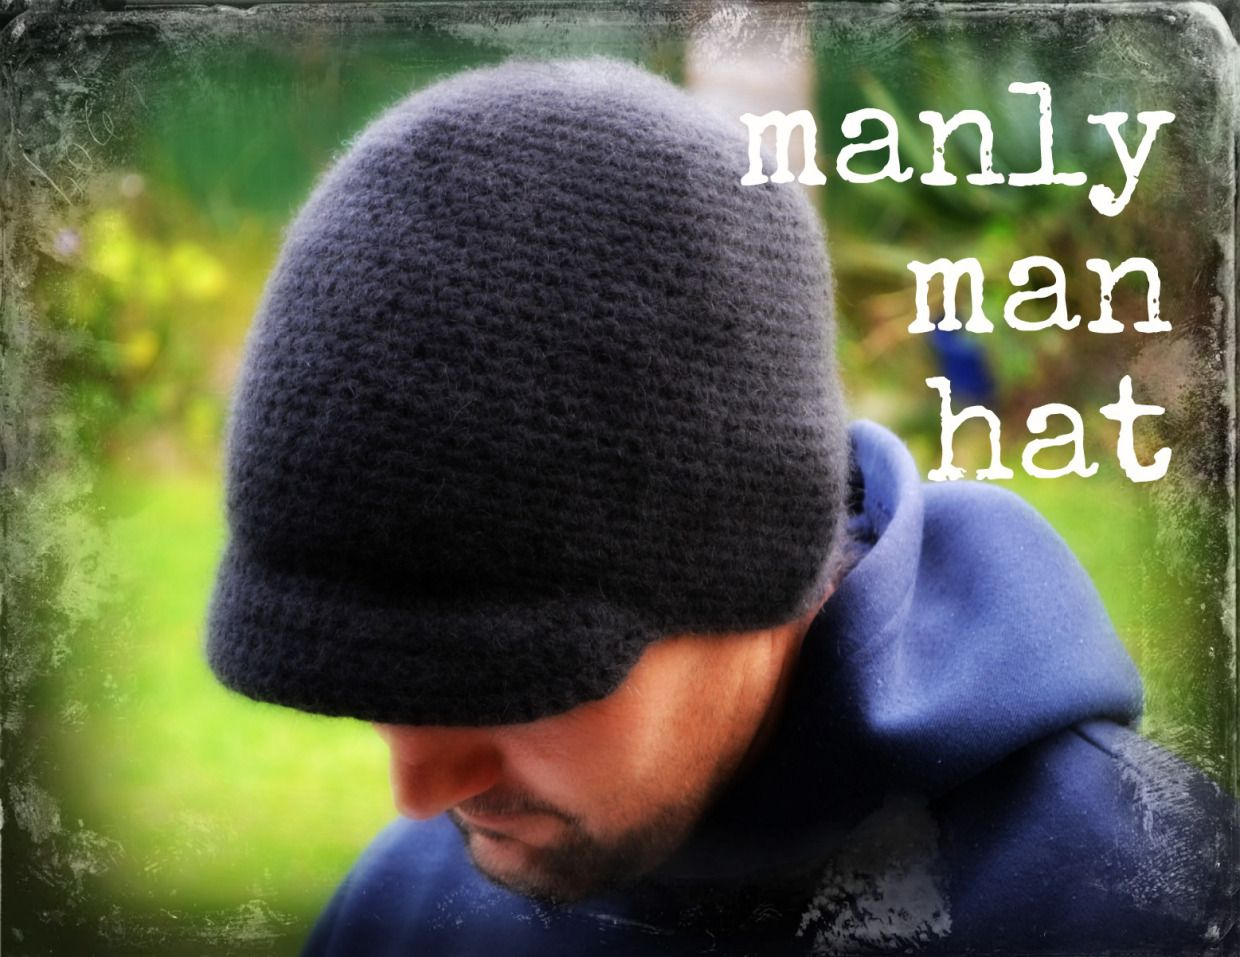 Crochet hat for a man | Pinterest